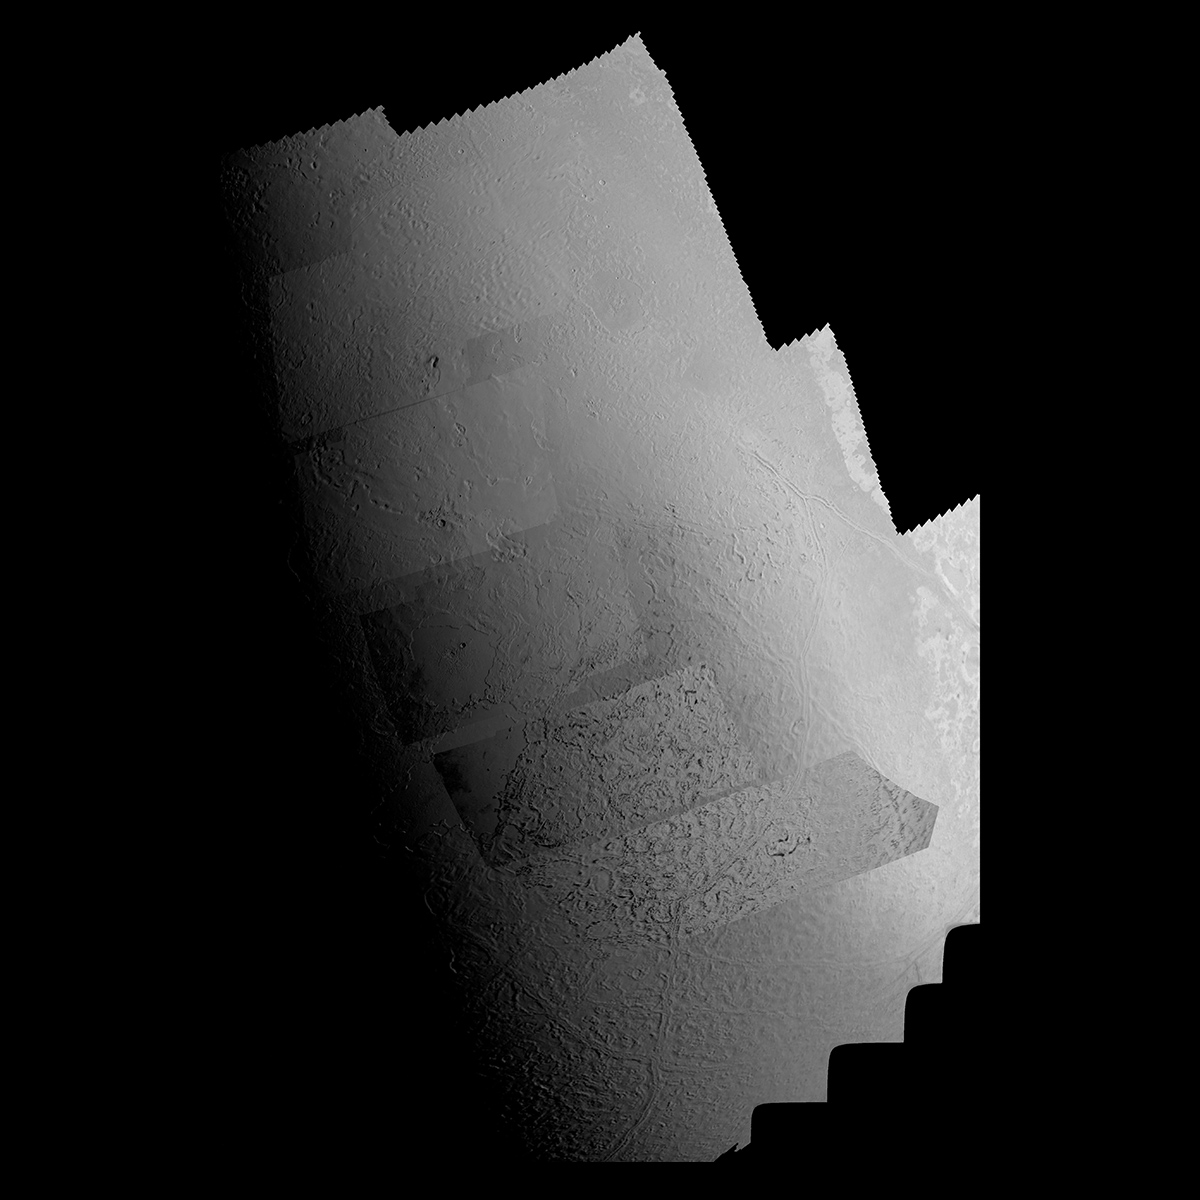 This picture of Triton is a mosaic of the highest resolution images taken by Voyager 2 on Aug. 25, 1989 from a distance of about 40,000 kilometers (24,800 miles).